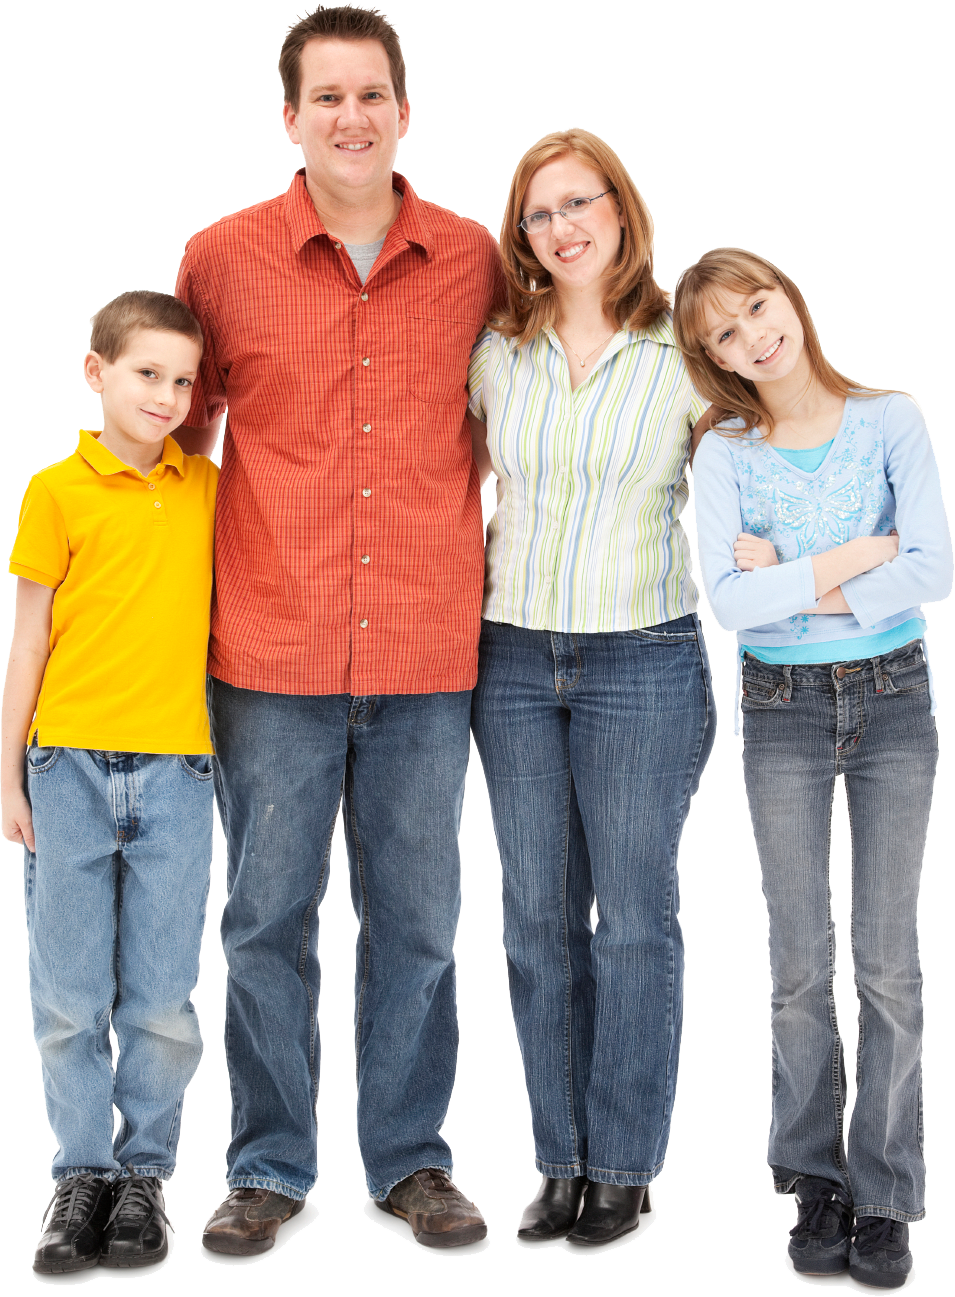 Family Png image #40049